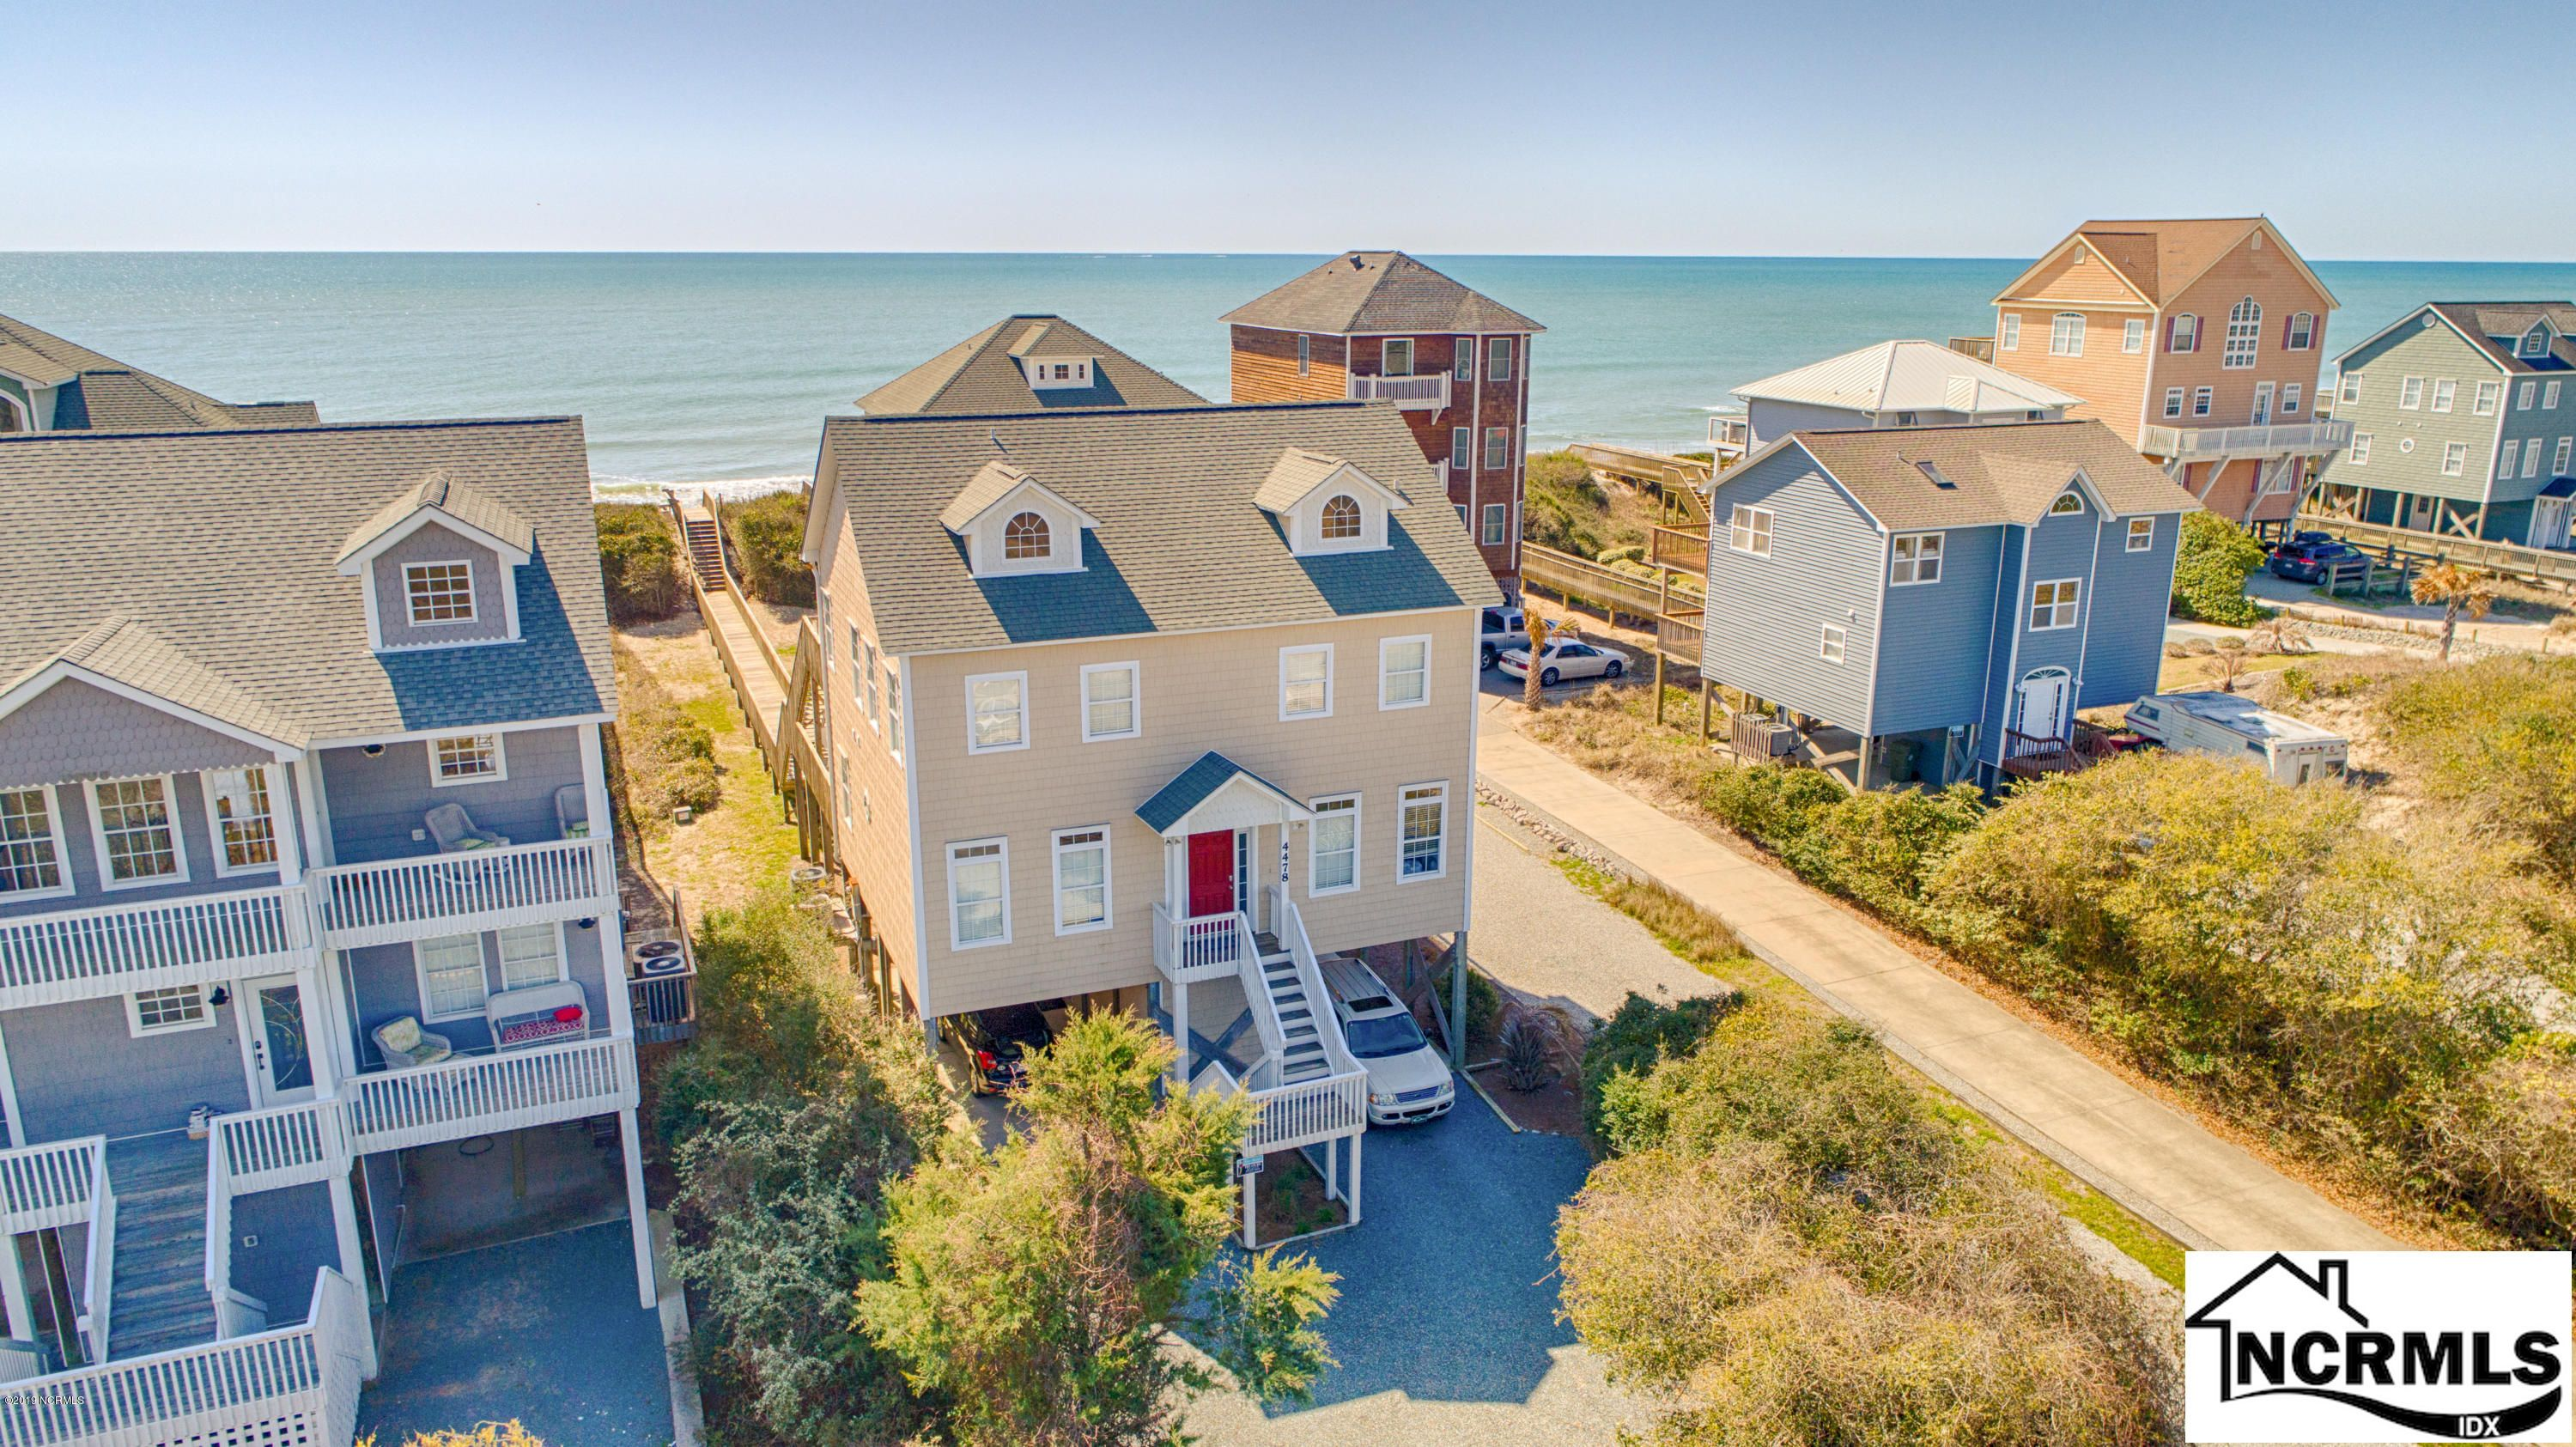 4478 Island Drive, North Topsail Beach, NC 28460 is now